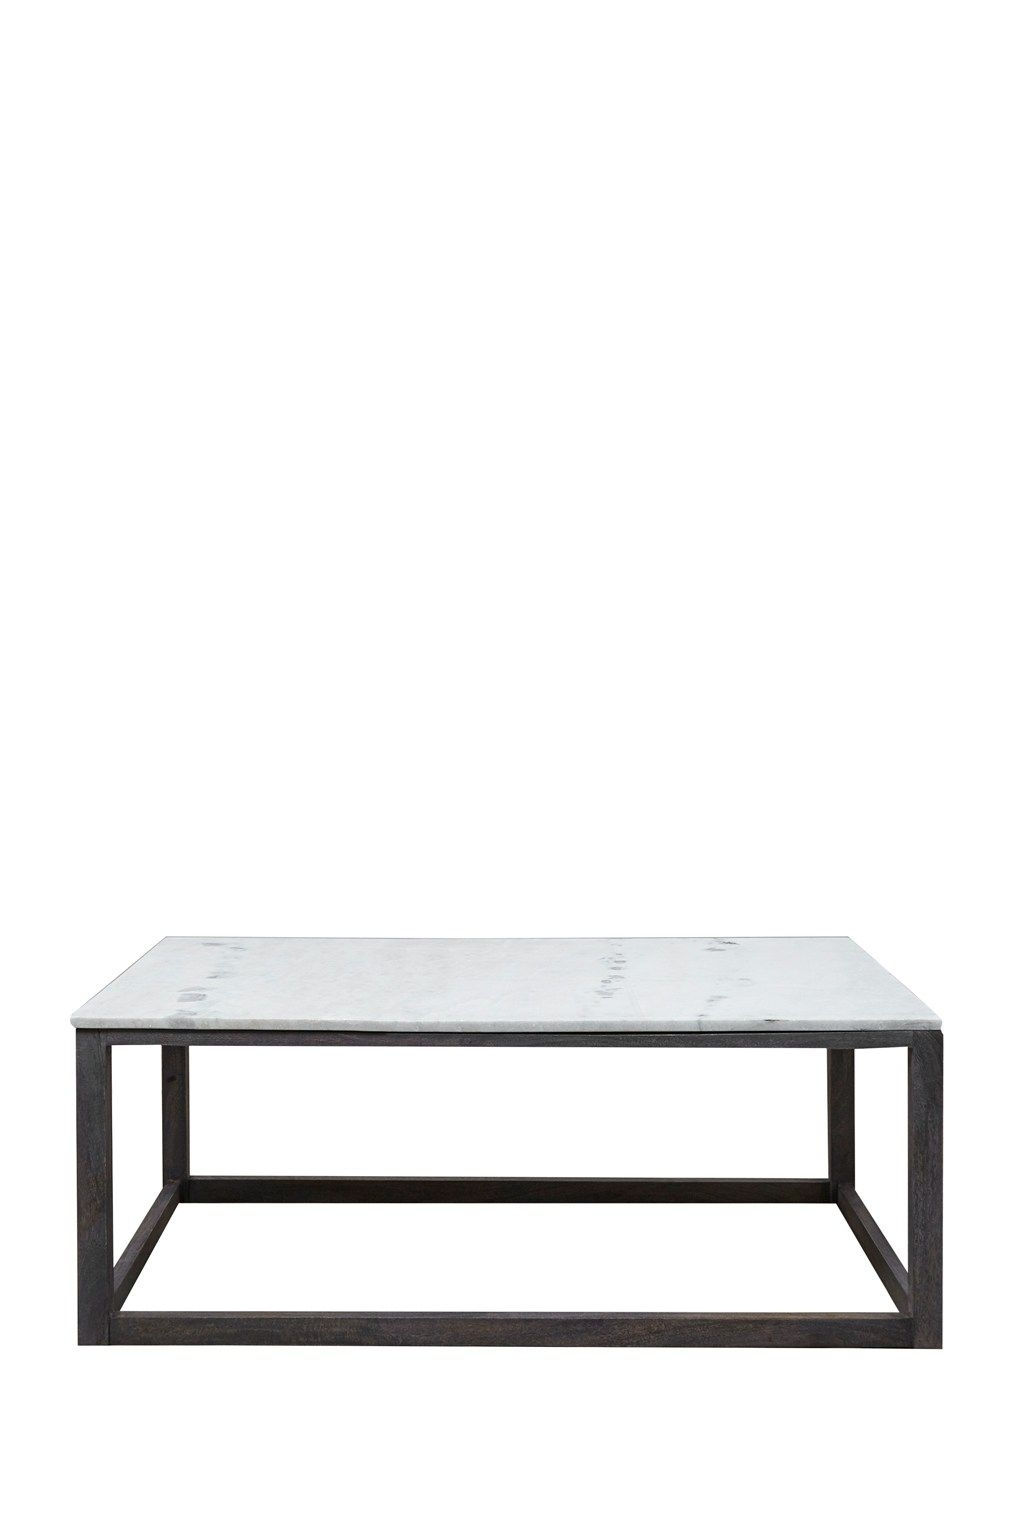 Marble Coffee Table | Furniture | Pinterest | Coffee Table Furniture in Large Slab Marble Coffee Tables With Antiqued Silver Base (Image 18 of 30)